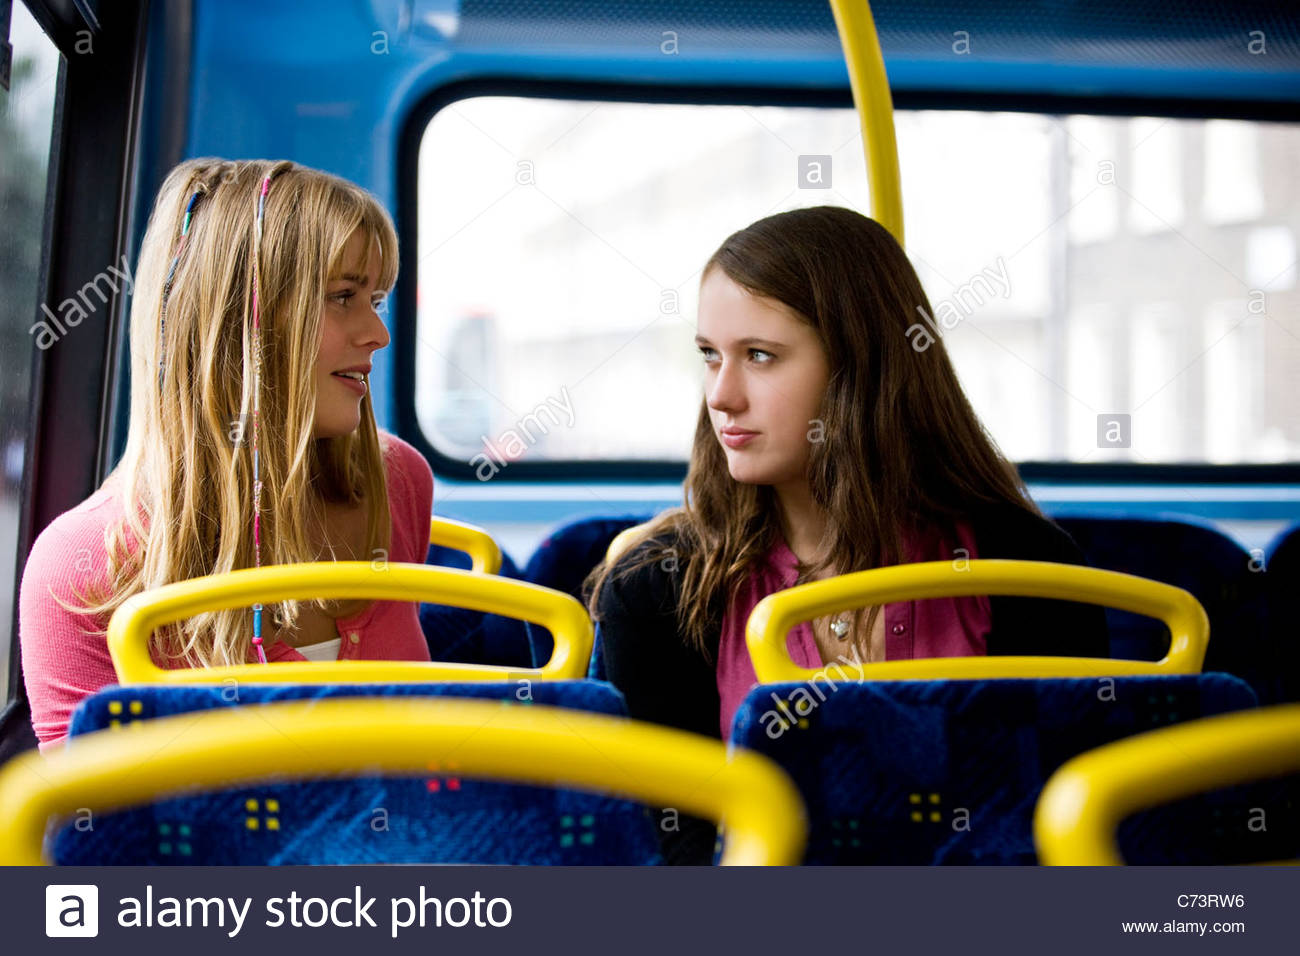 Two teenage girls sitting on a bus, having a conversation Stock Photo